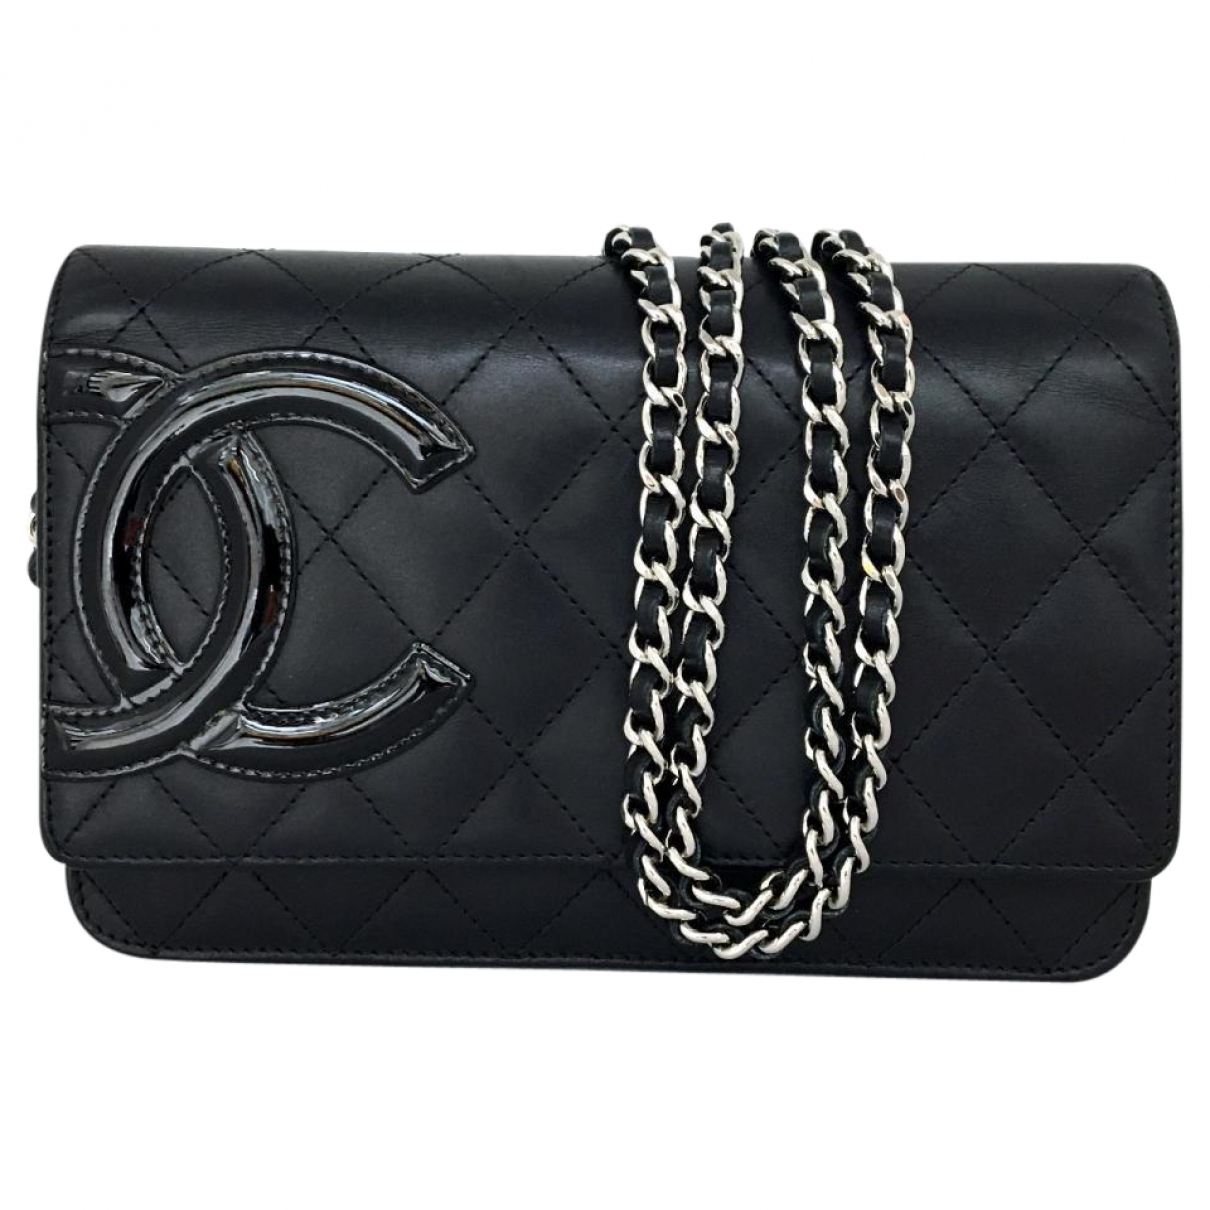 Chanel Cambon Black Leather handbag for Women \N